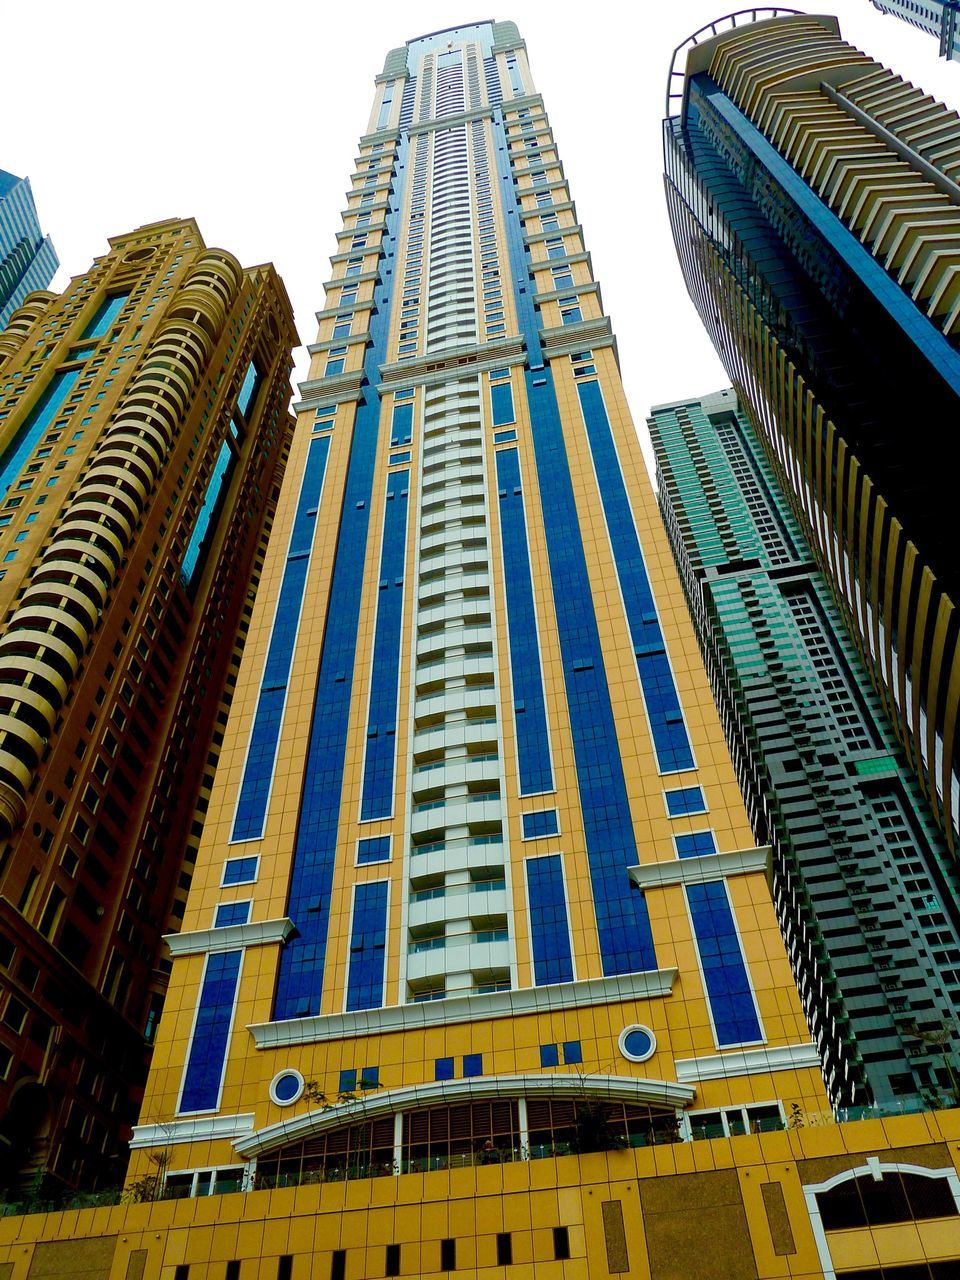 architecture, low angle view, building exterior, built structure, skyscraper, modern, outdoors, day, no people, city, clear sky, sky